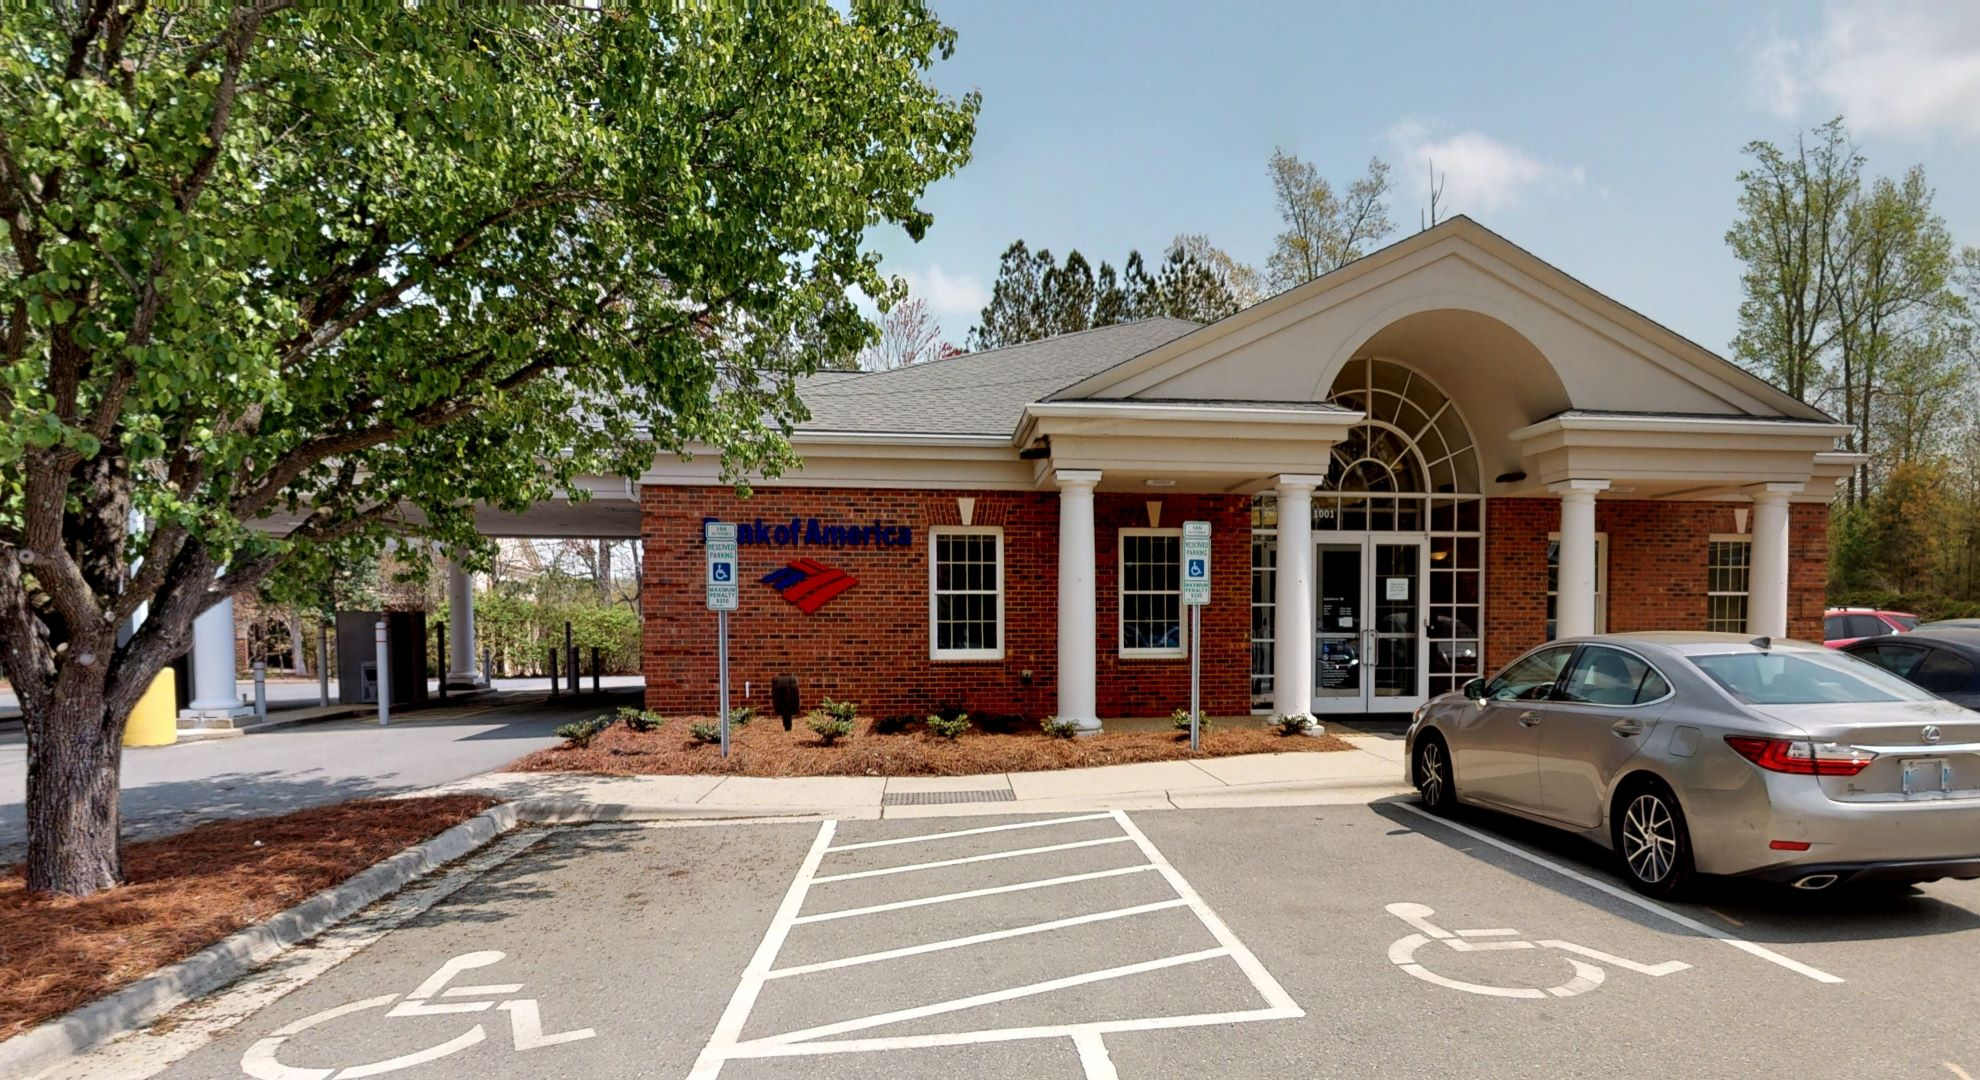 Bank of America financial center with drive-thru ATM | 1001 Saint Charles Pl, Cary, NC 27513